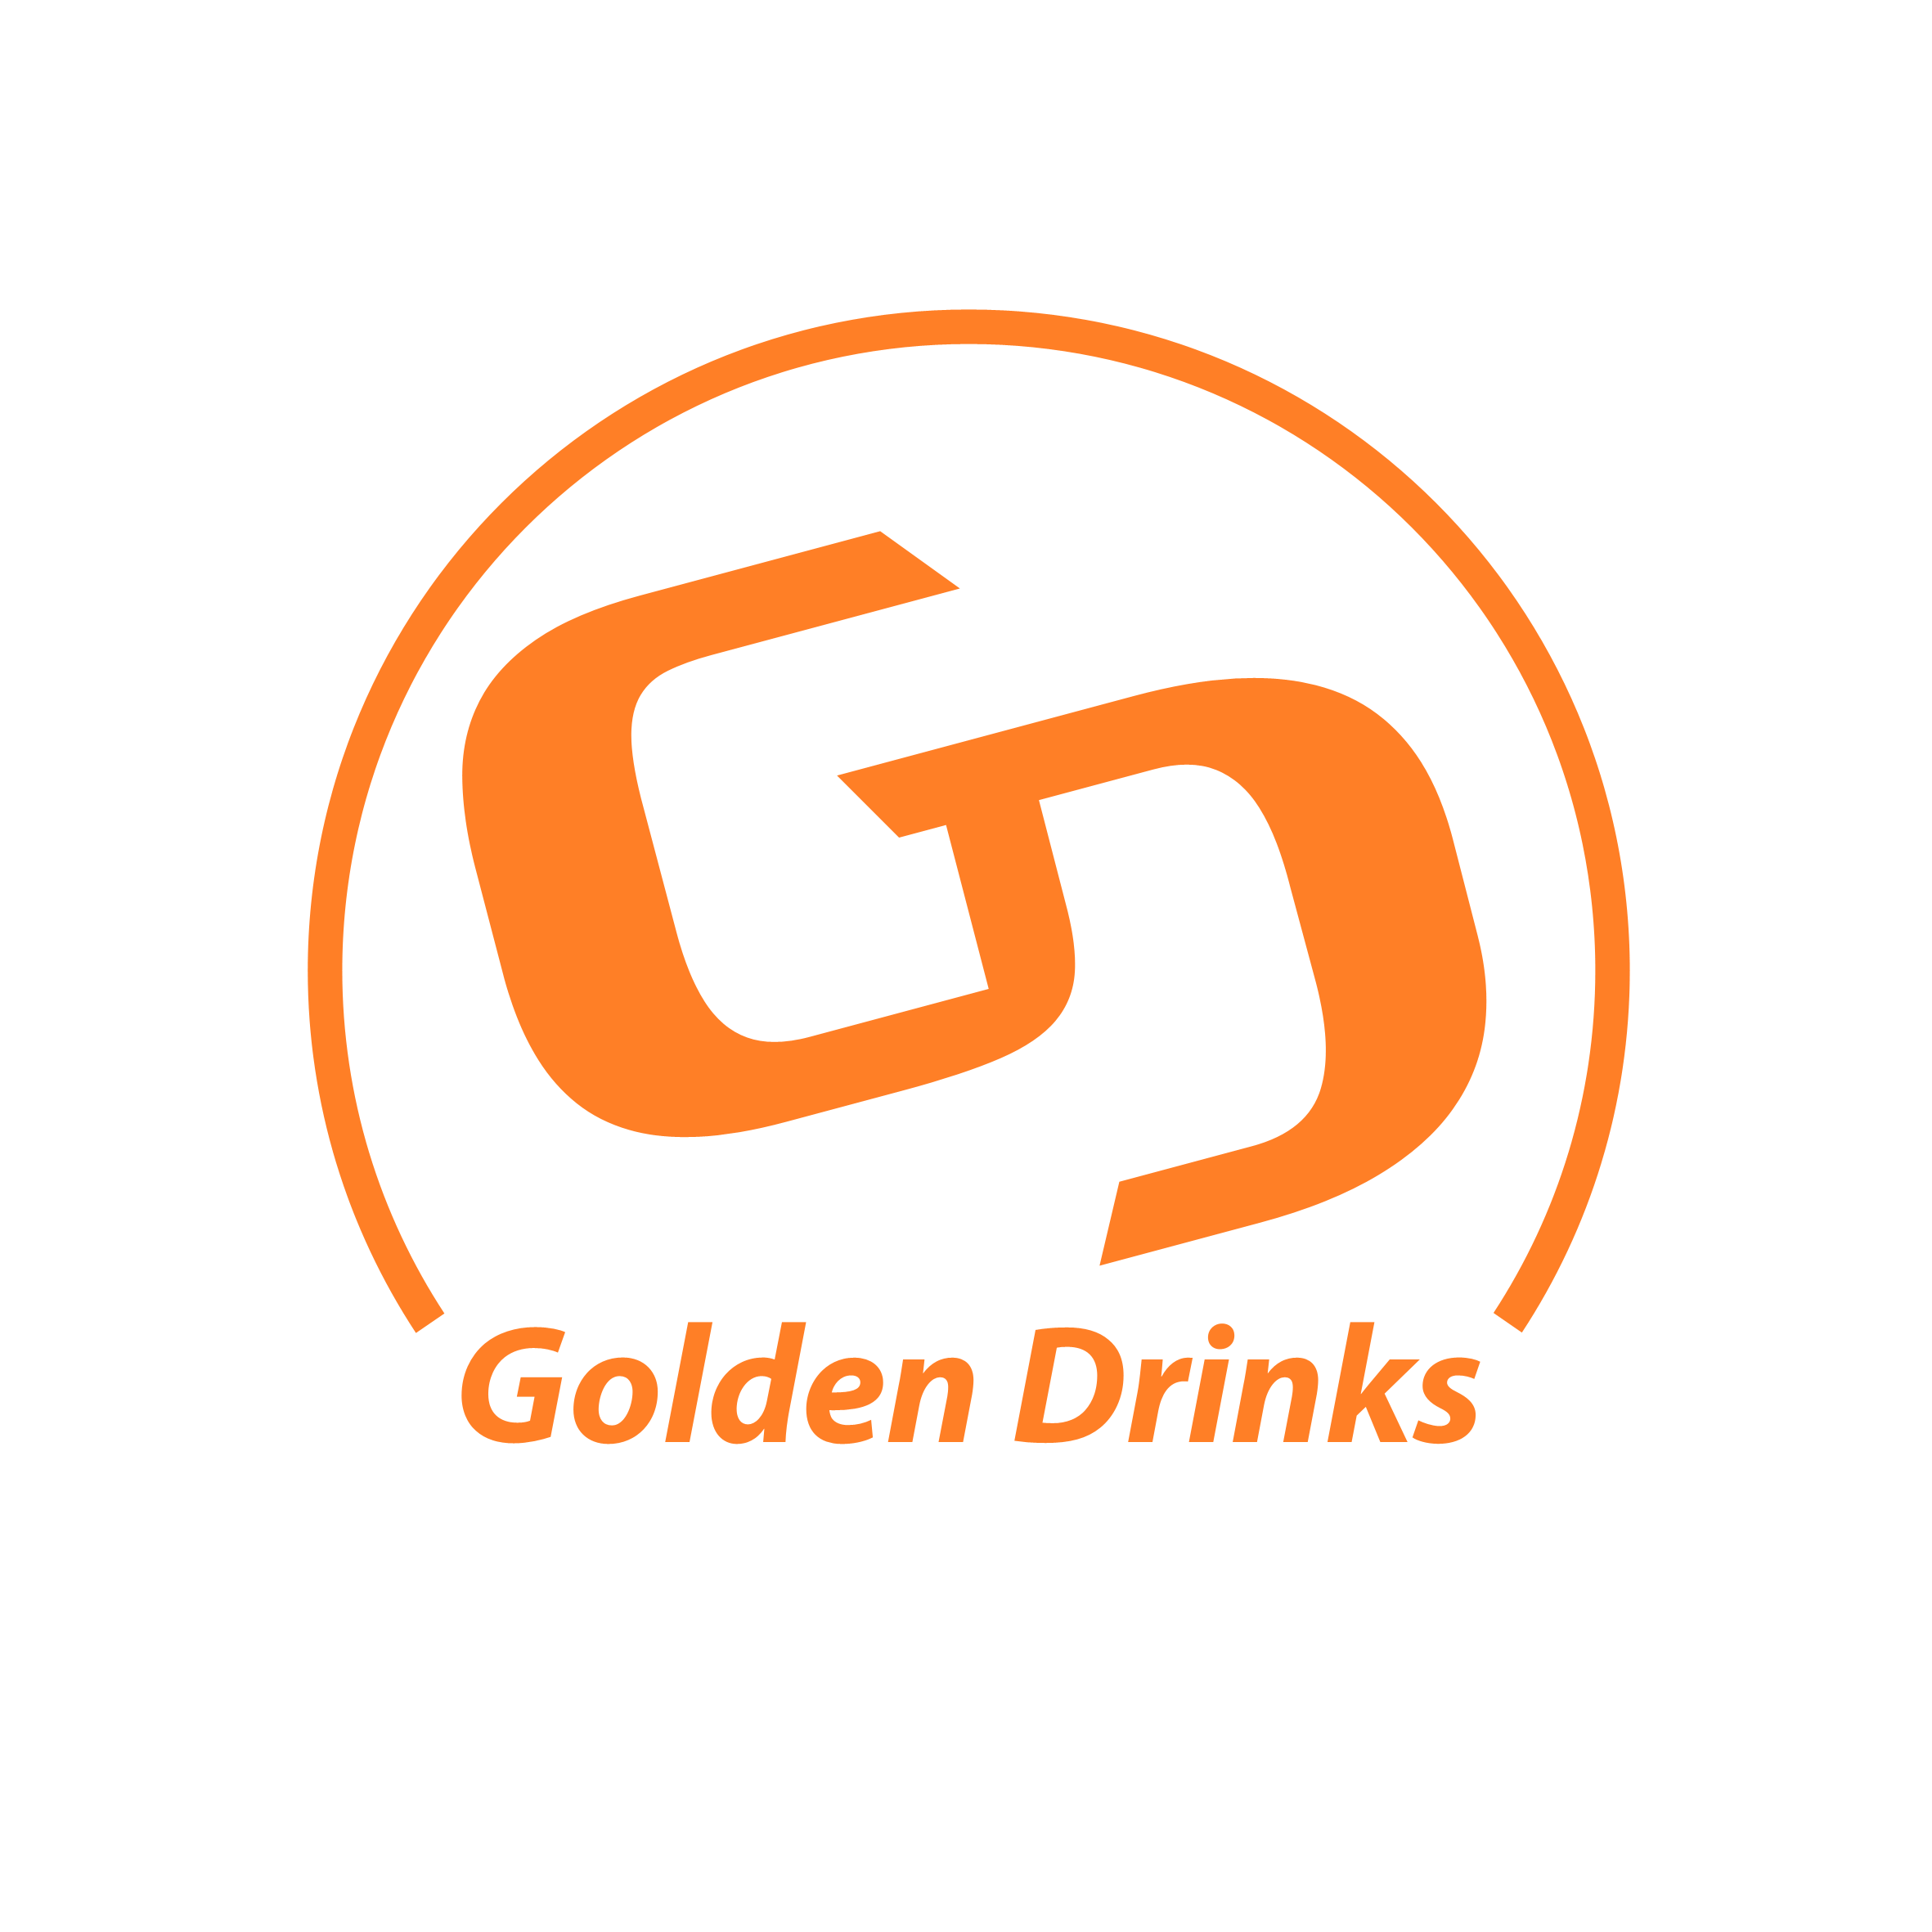 Golden Drinks